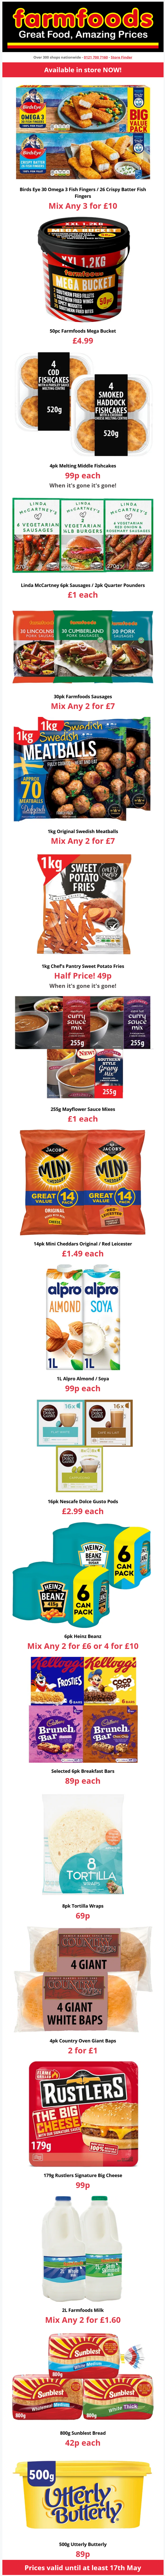 Farmfoods Offers from 4/5/2021 Preview